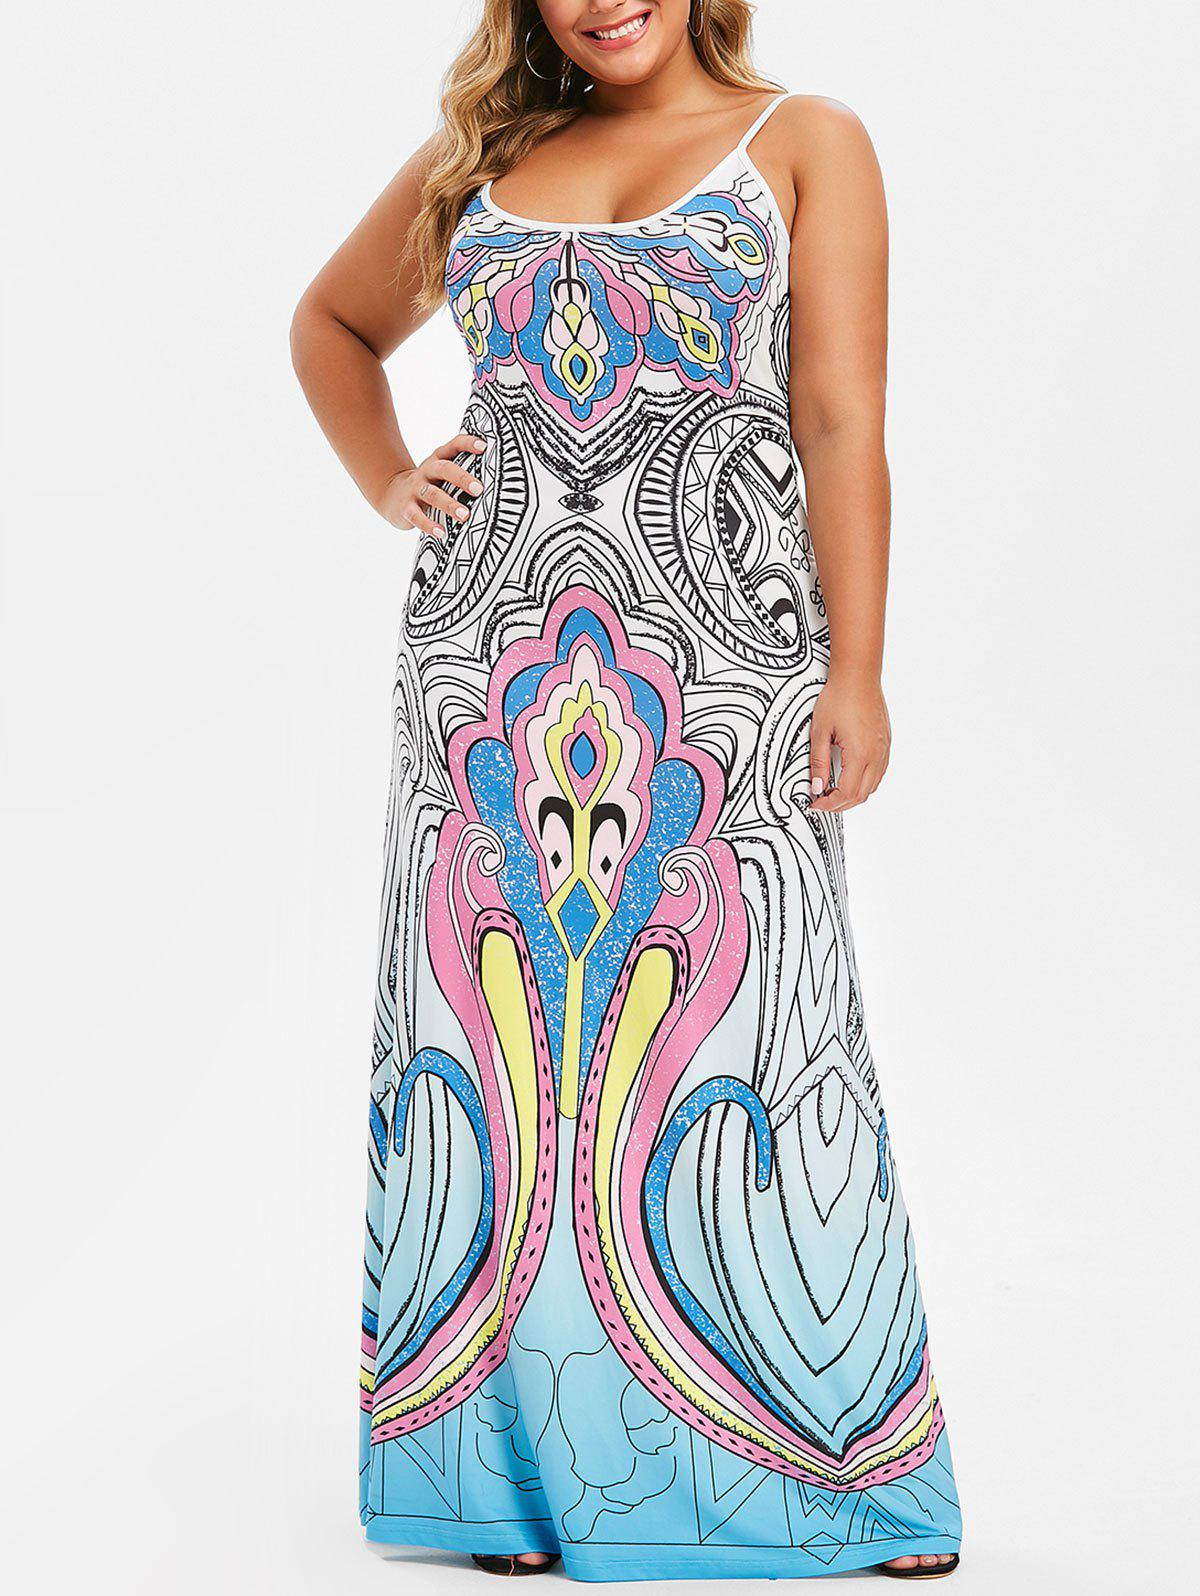 Plus Size Spaghetti Strap Ethnic Print Maxi Dress, Multi